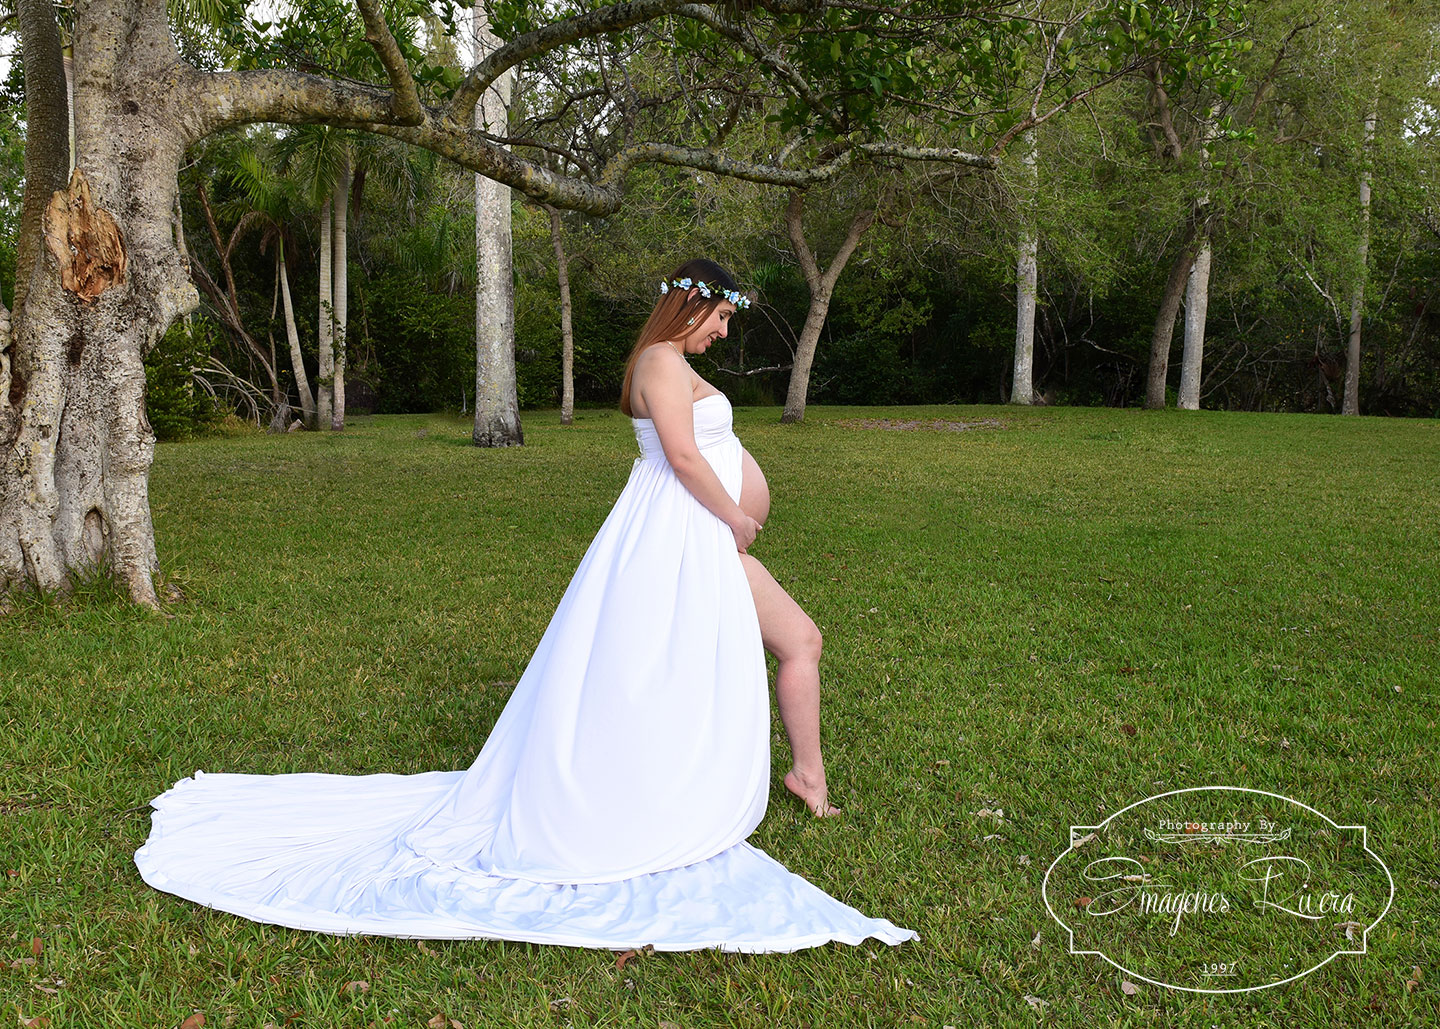 ♥ Twins Maternity Photo Shoot in a Matheson Hammock Park Miami ♥